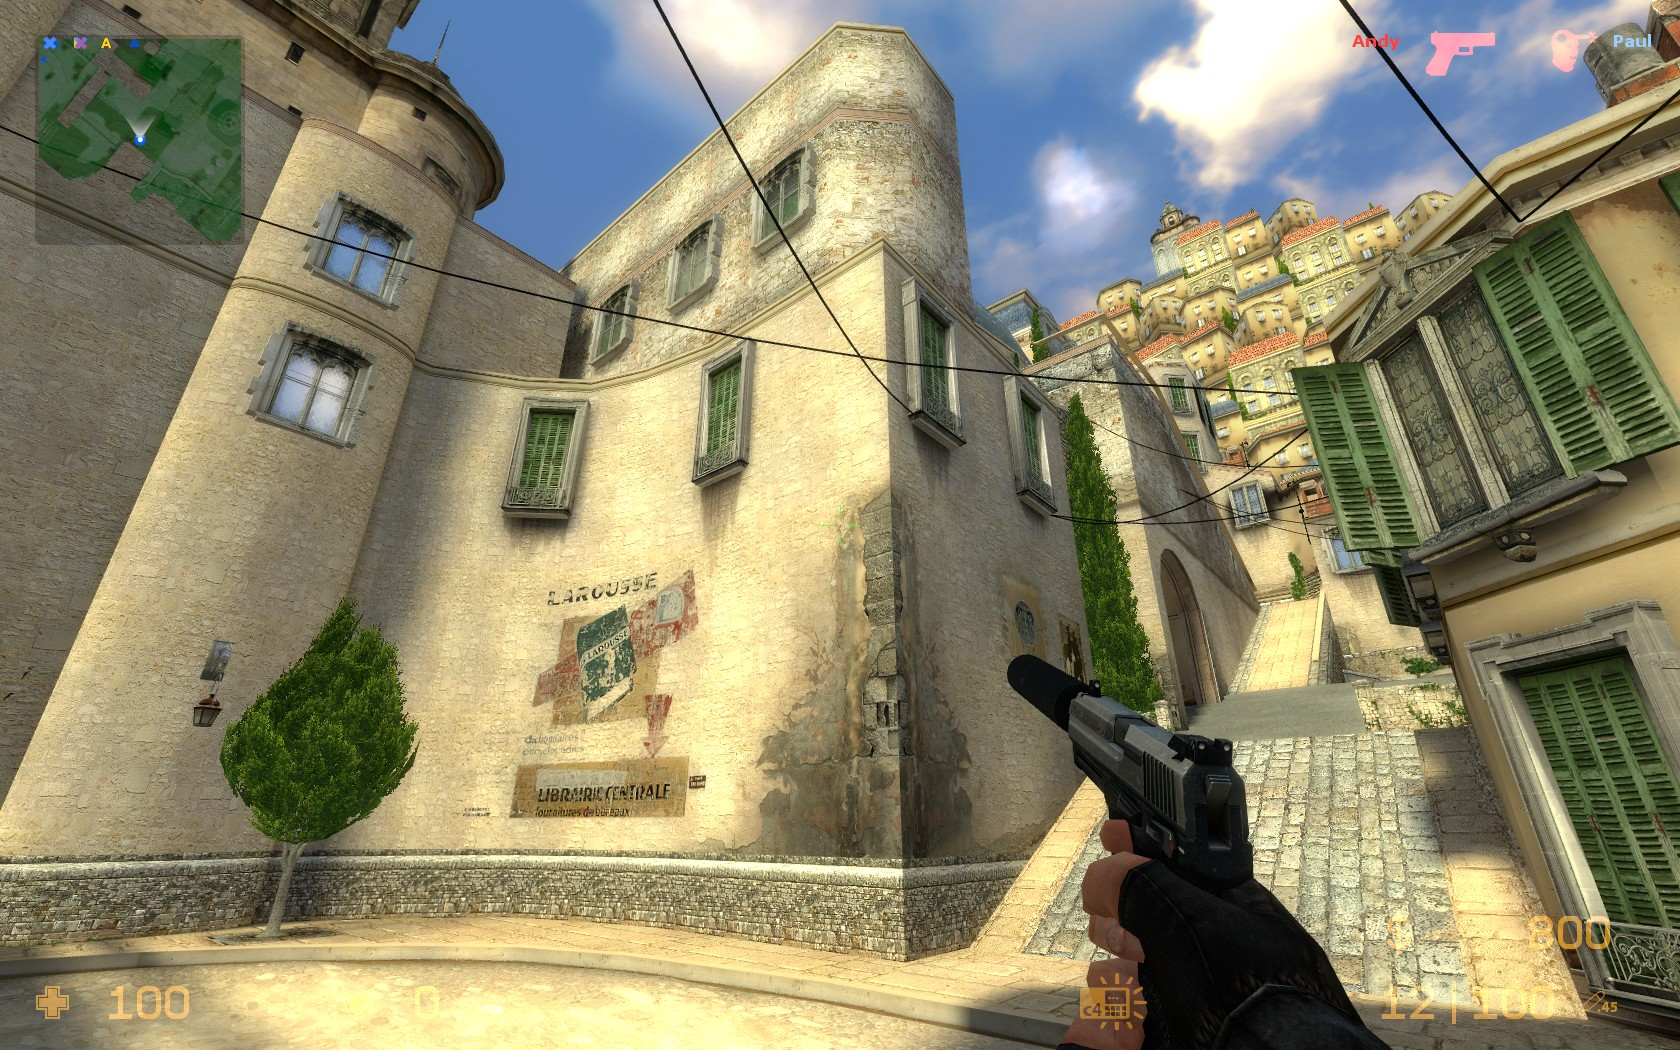 Image from Counter Strike: Source, By Tamahikari Tammas